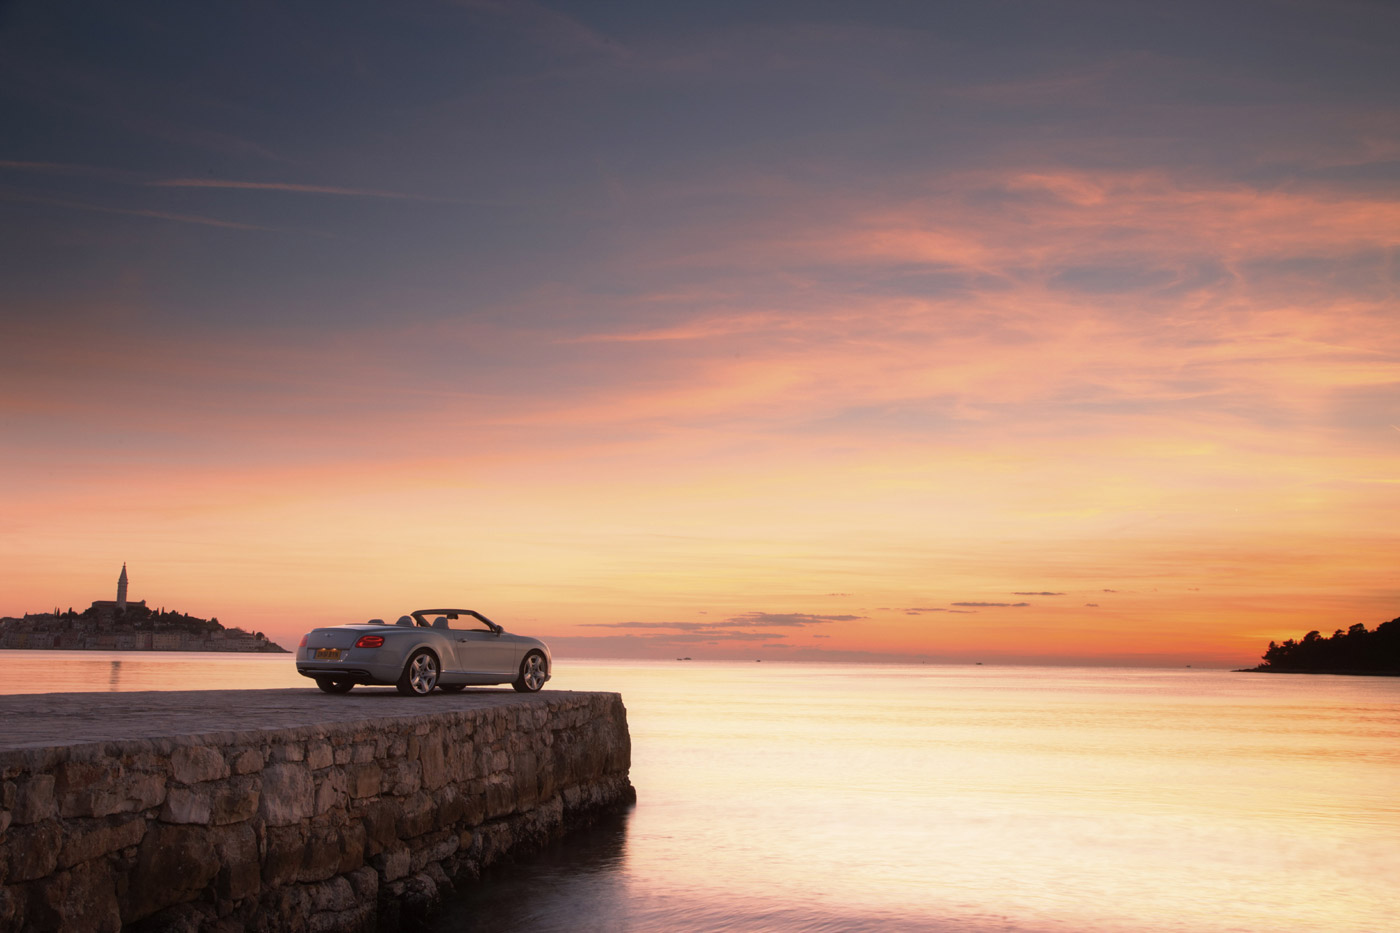 <p>Exquisite sunset on the Croatian coastline. The ancient town of Rovinj in the background.</p>